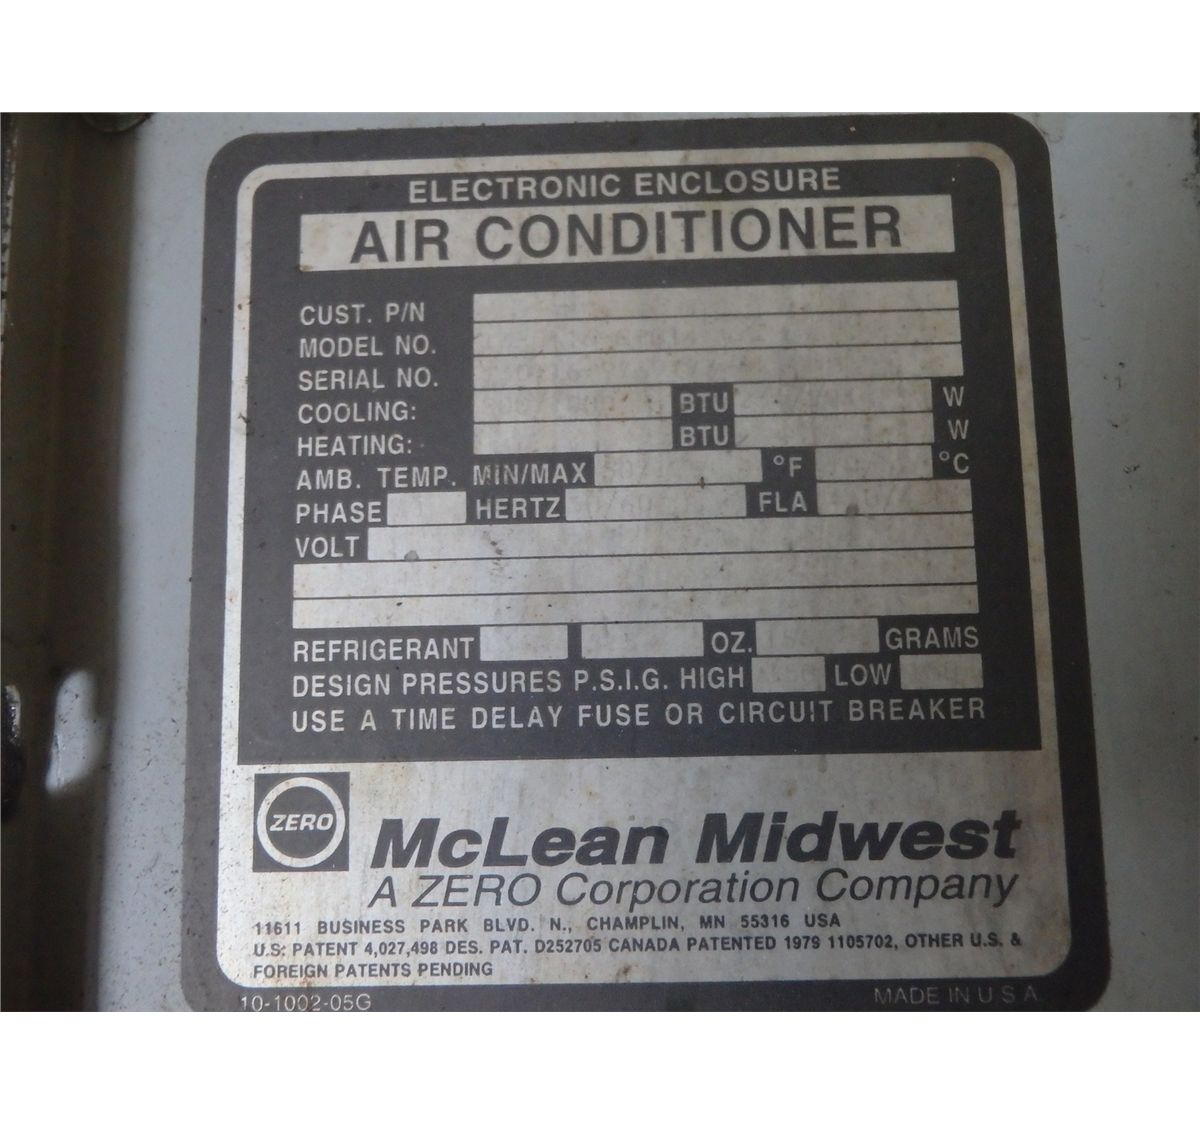 hight resolution of  image 5 mclean midwest electrical box chiller air conditioner tag not legible